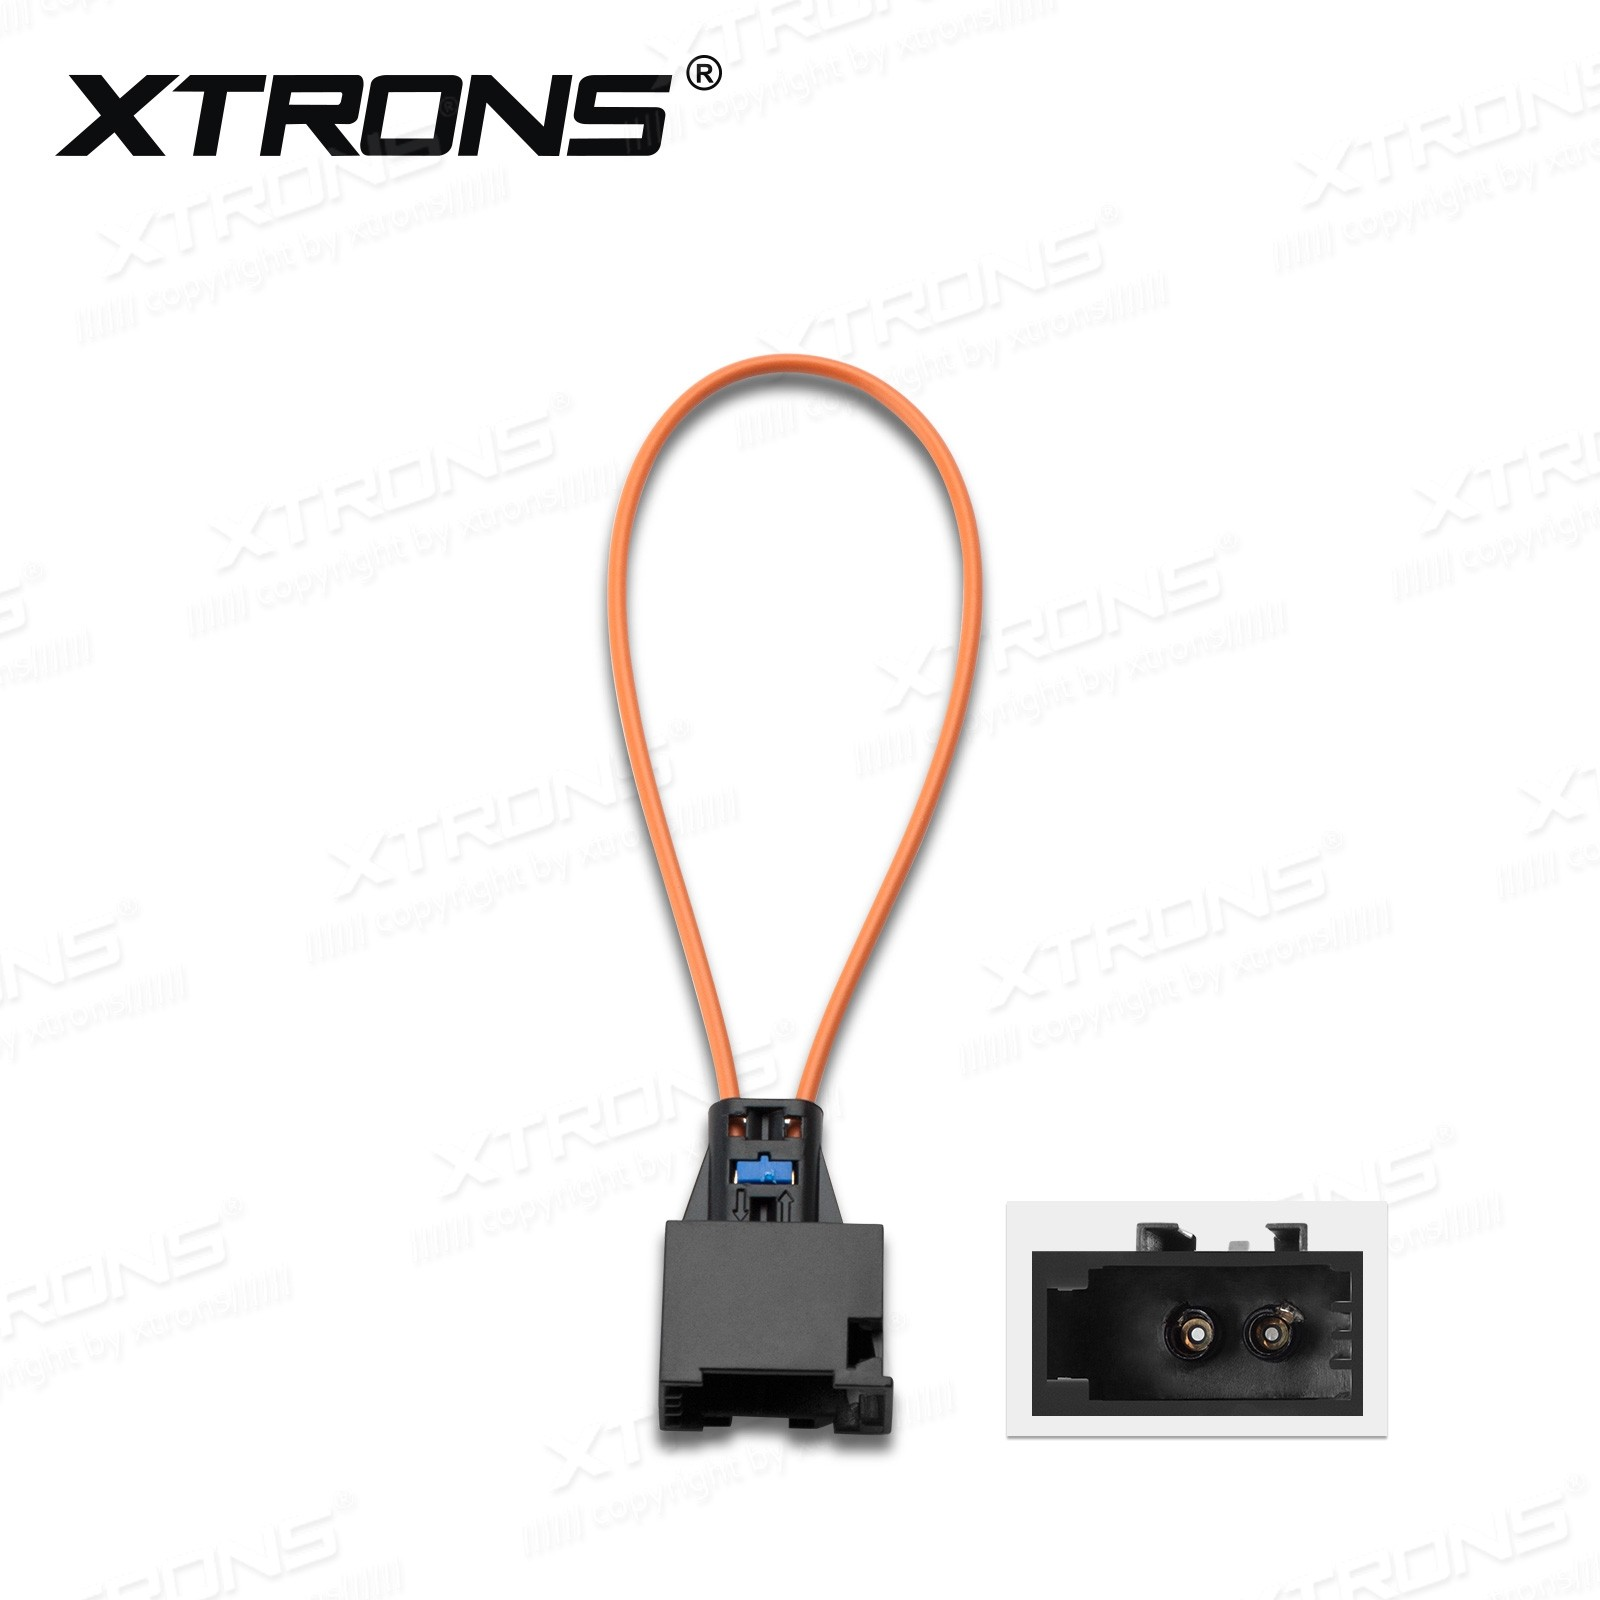 Most Fiber Optic Loop Female Connector For use with BMW,VW,Audi,Porsche,Mercedes Media Systems